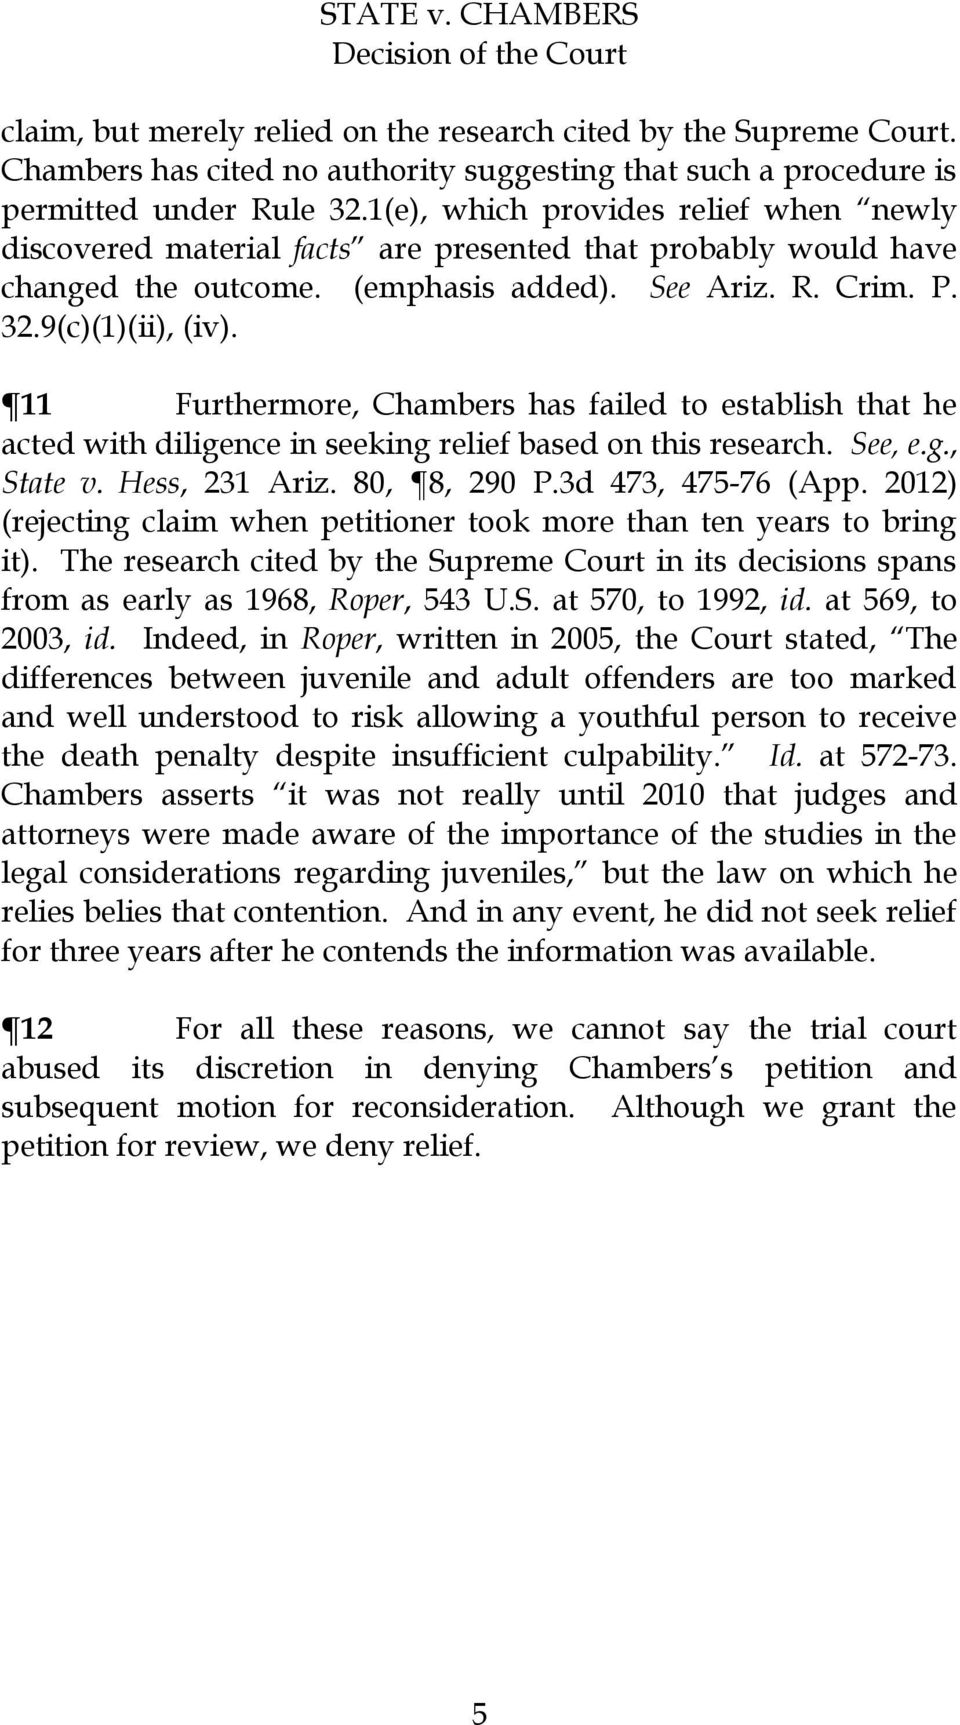 11 Furthermore, Chambers has failed to establish that he acted with diligence in seeking relief based on this research. See, e.g., State v. Hess, 231 Ariz. 80, 8, 290 P.3d 473, 475-76 (App.